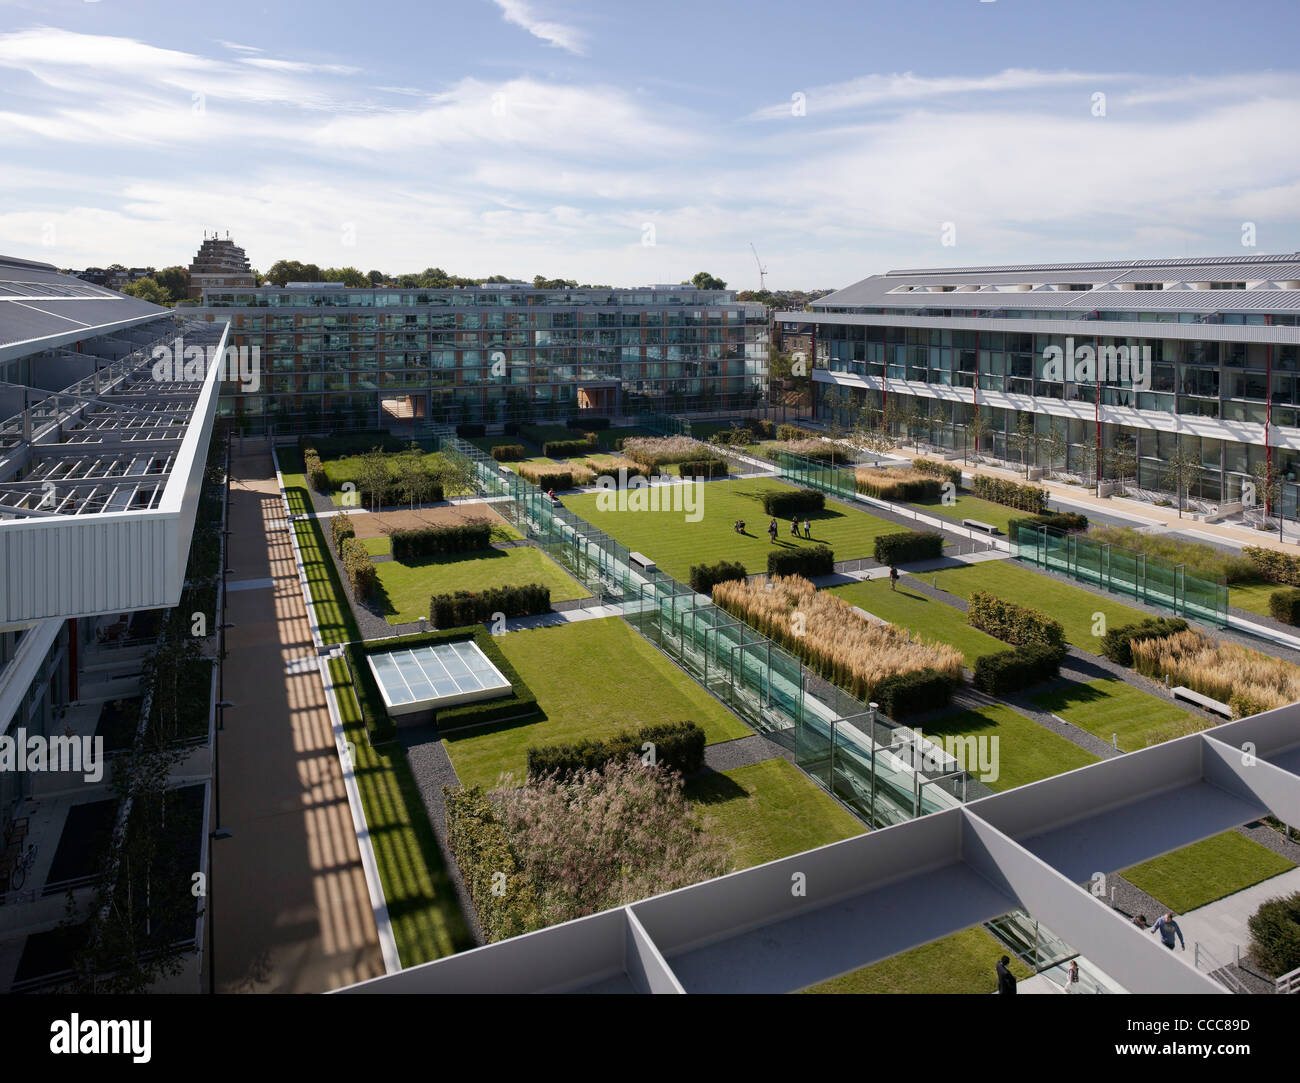 Highbury Square High Resolution Stock Photography And Images Alamy